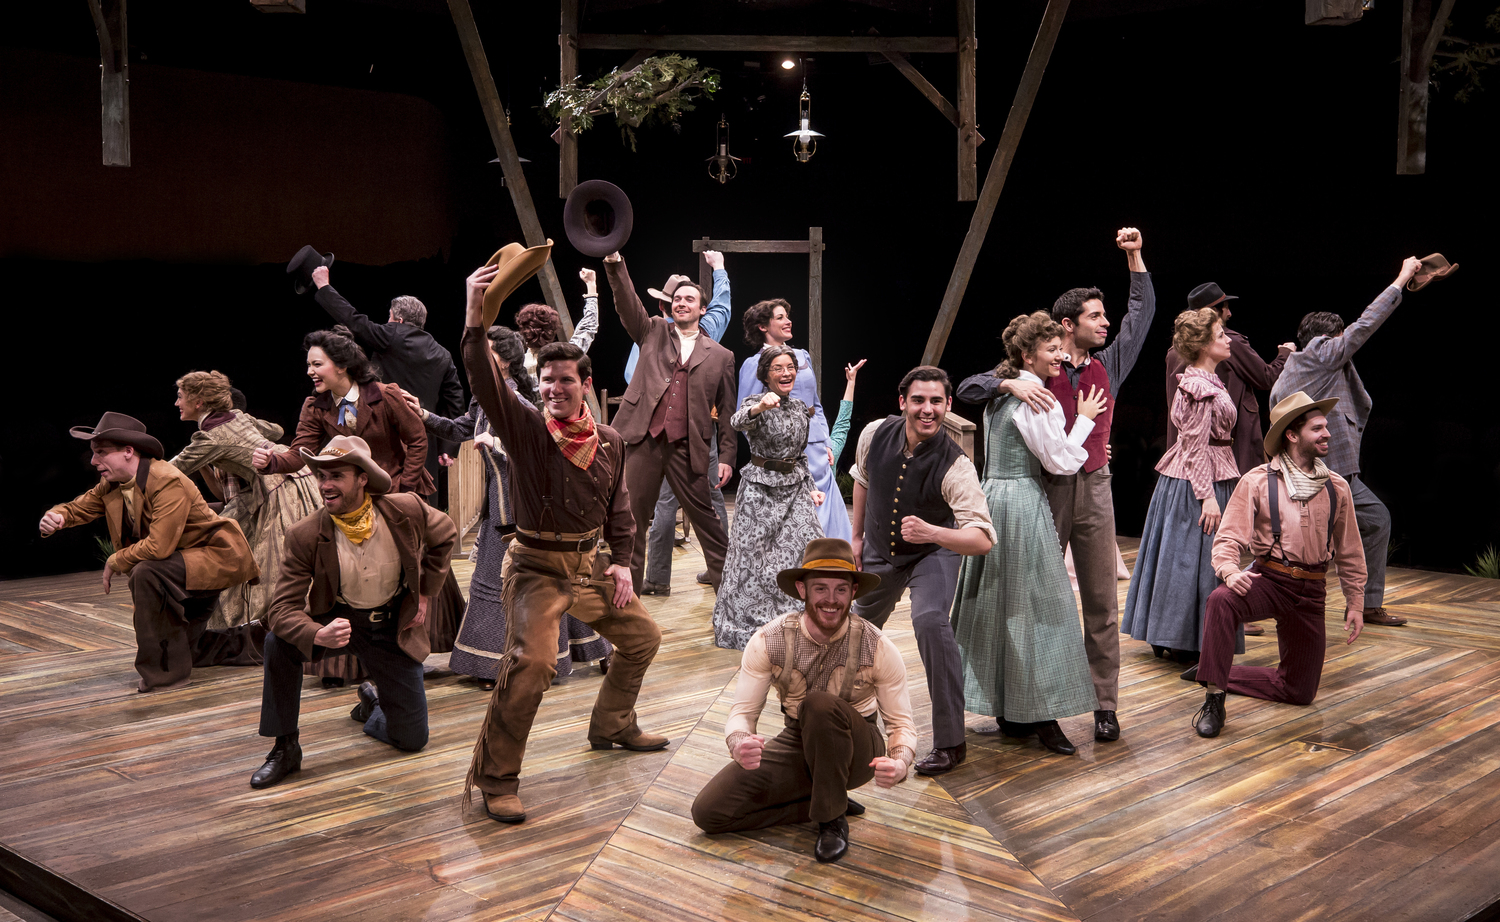 BWW Review: OKLAHOMA! at Marriott Theatre